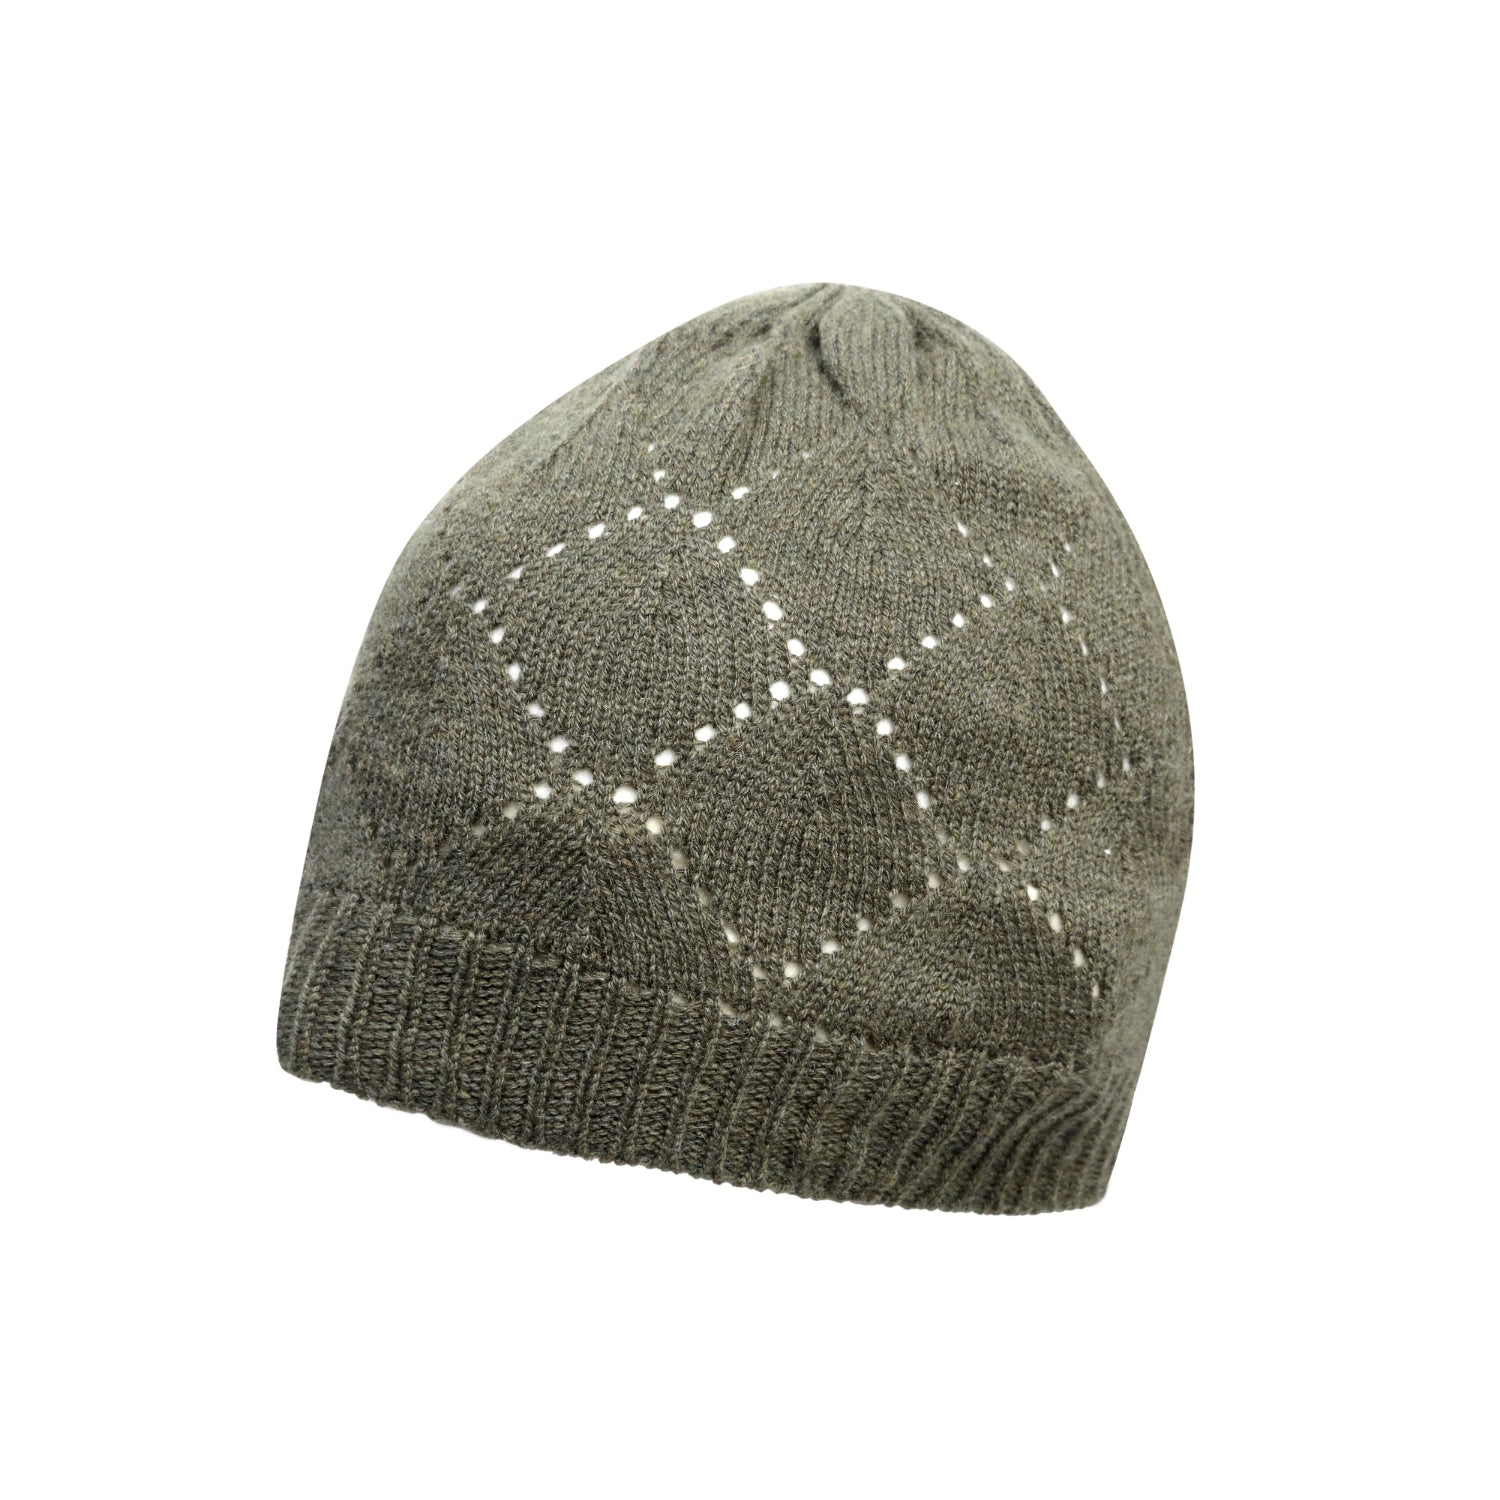 beb8ae219ab Johnstons Cashmere - Pointelle Knit - Pure Cashmere Beanie - The ...